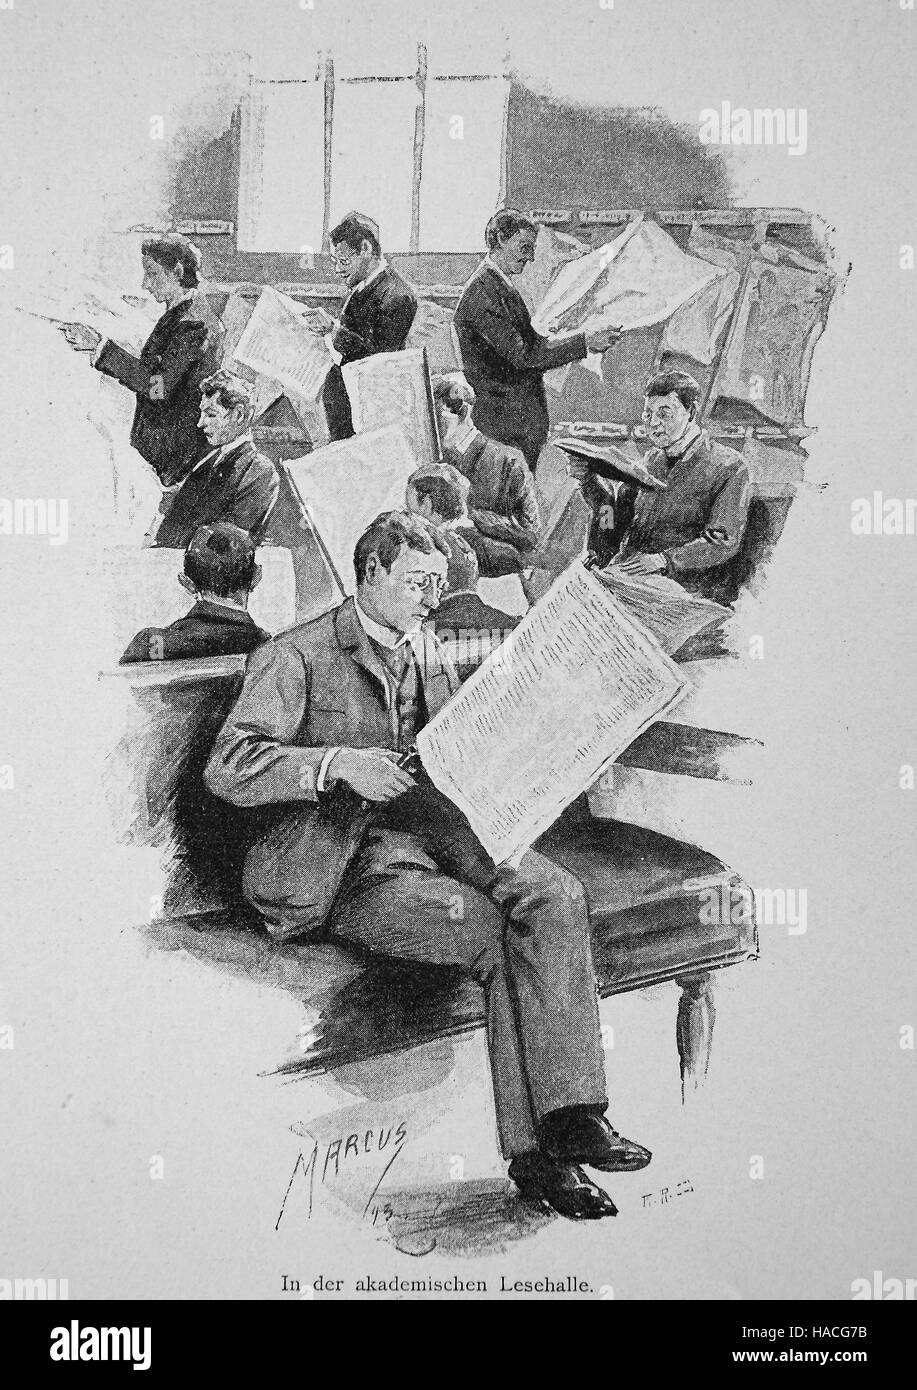 man reading newspaper in an academic reading room, 1880, Germany, historic illustration, woodcut - Stock Image